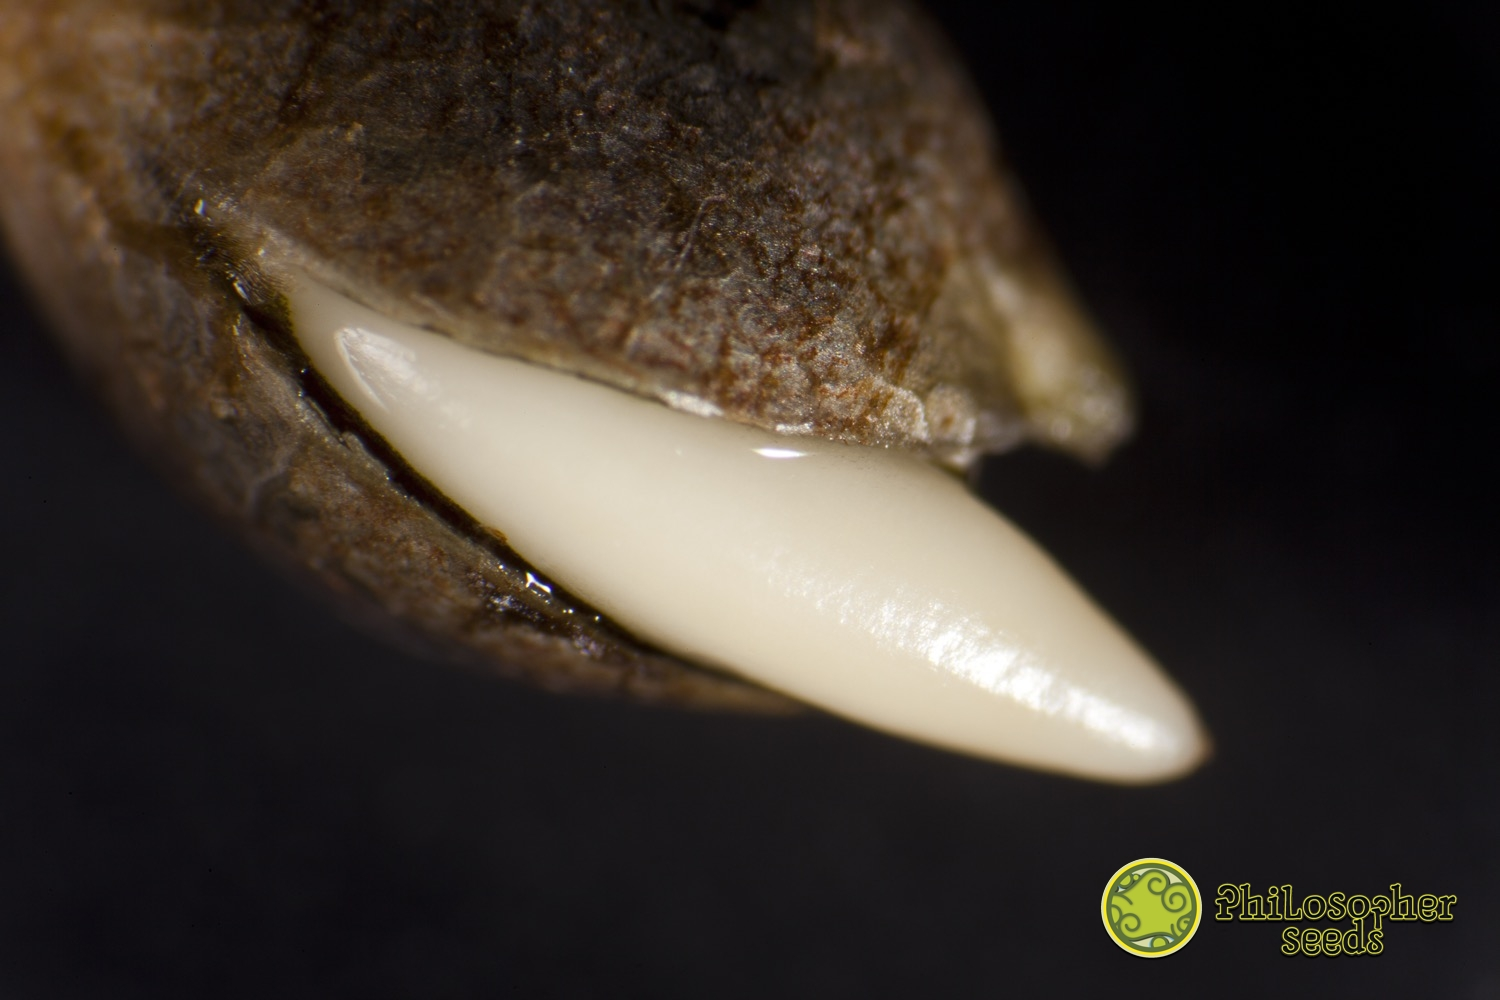 Germination de graines de cannabis